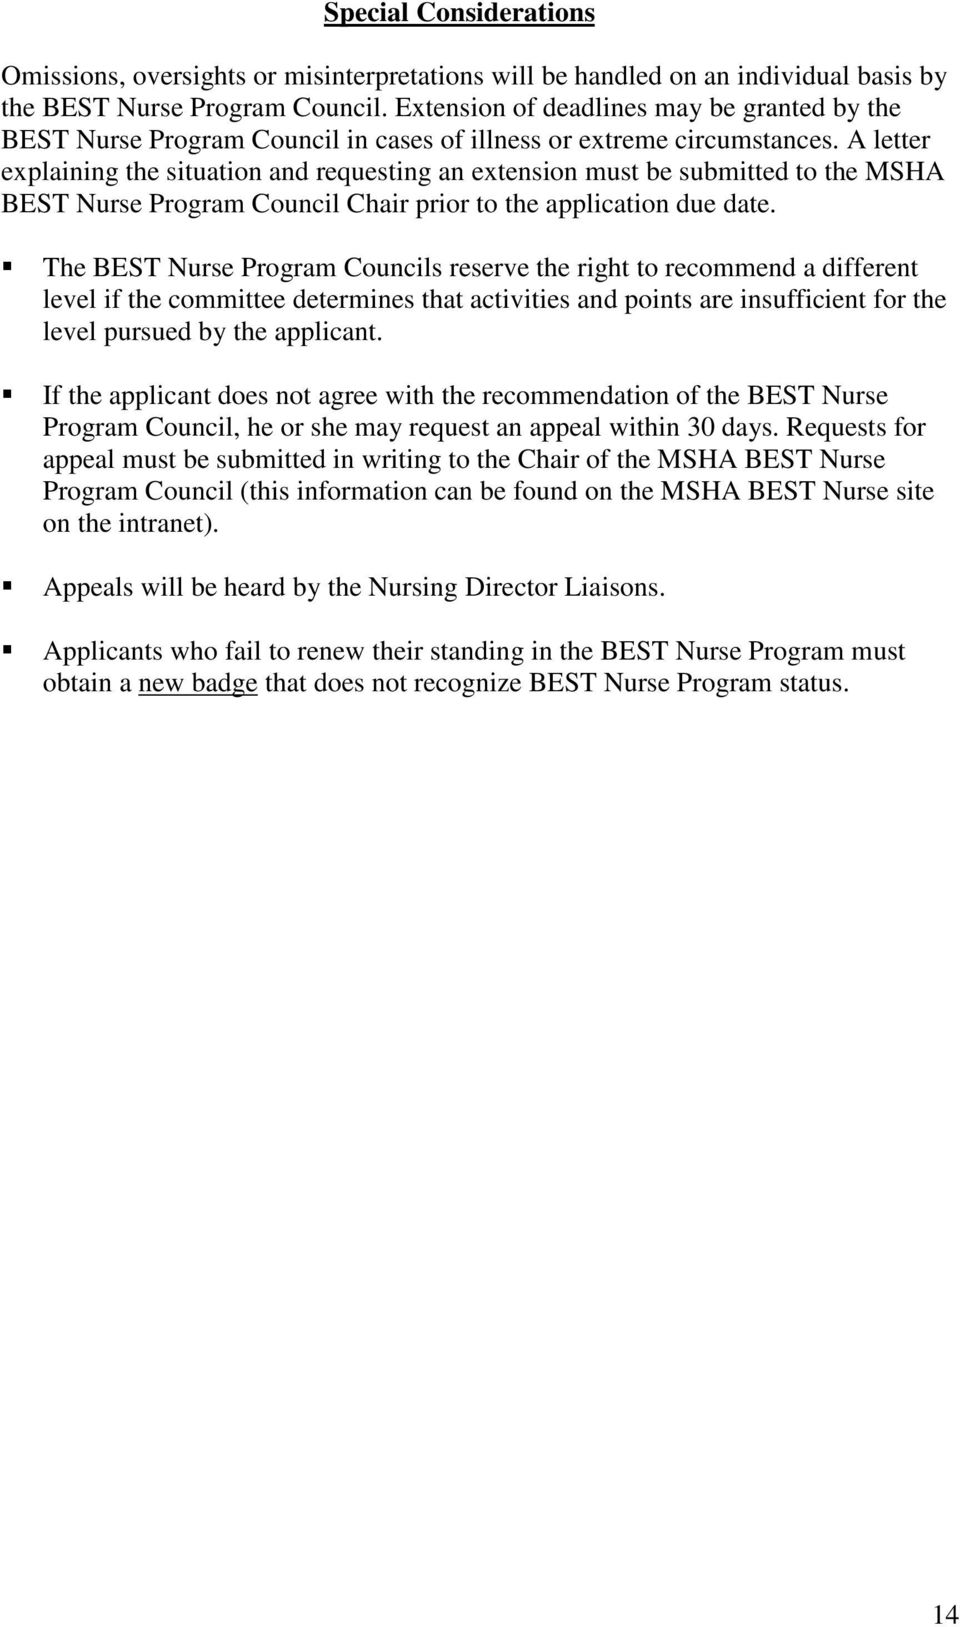 A letter explaining the situation and requesting an extension must be submitted to the MSHA BEST Nurse Program Council Chair prior to the application due date.